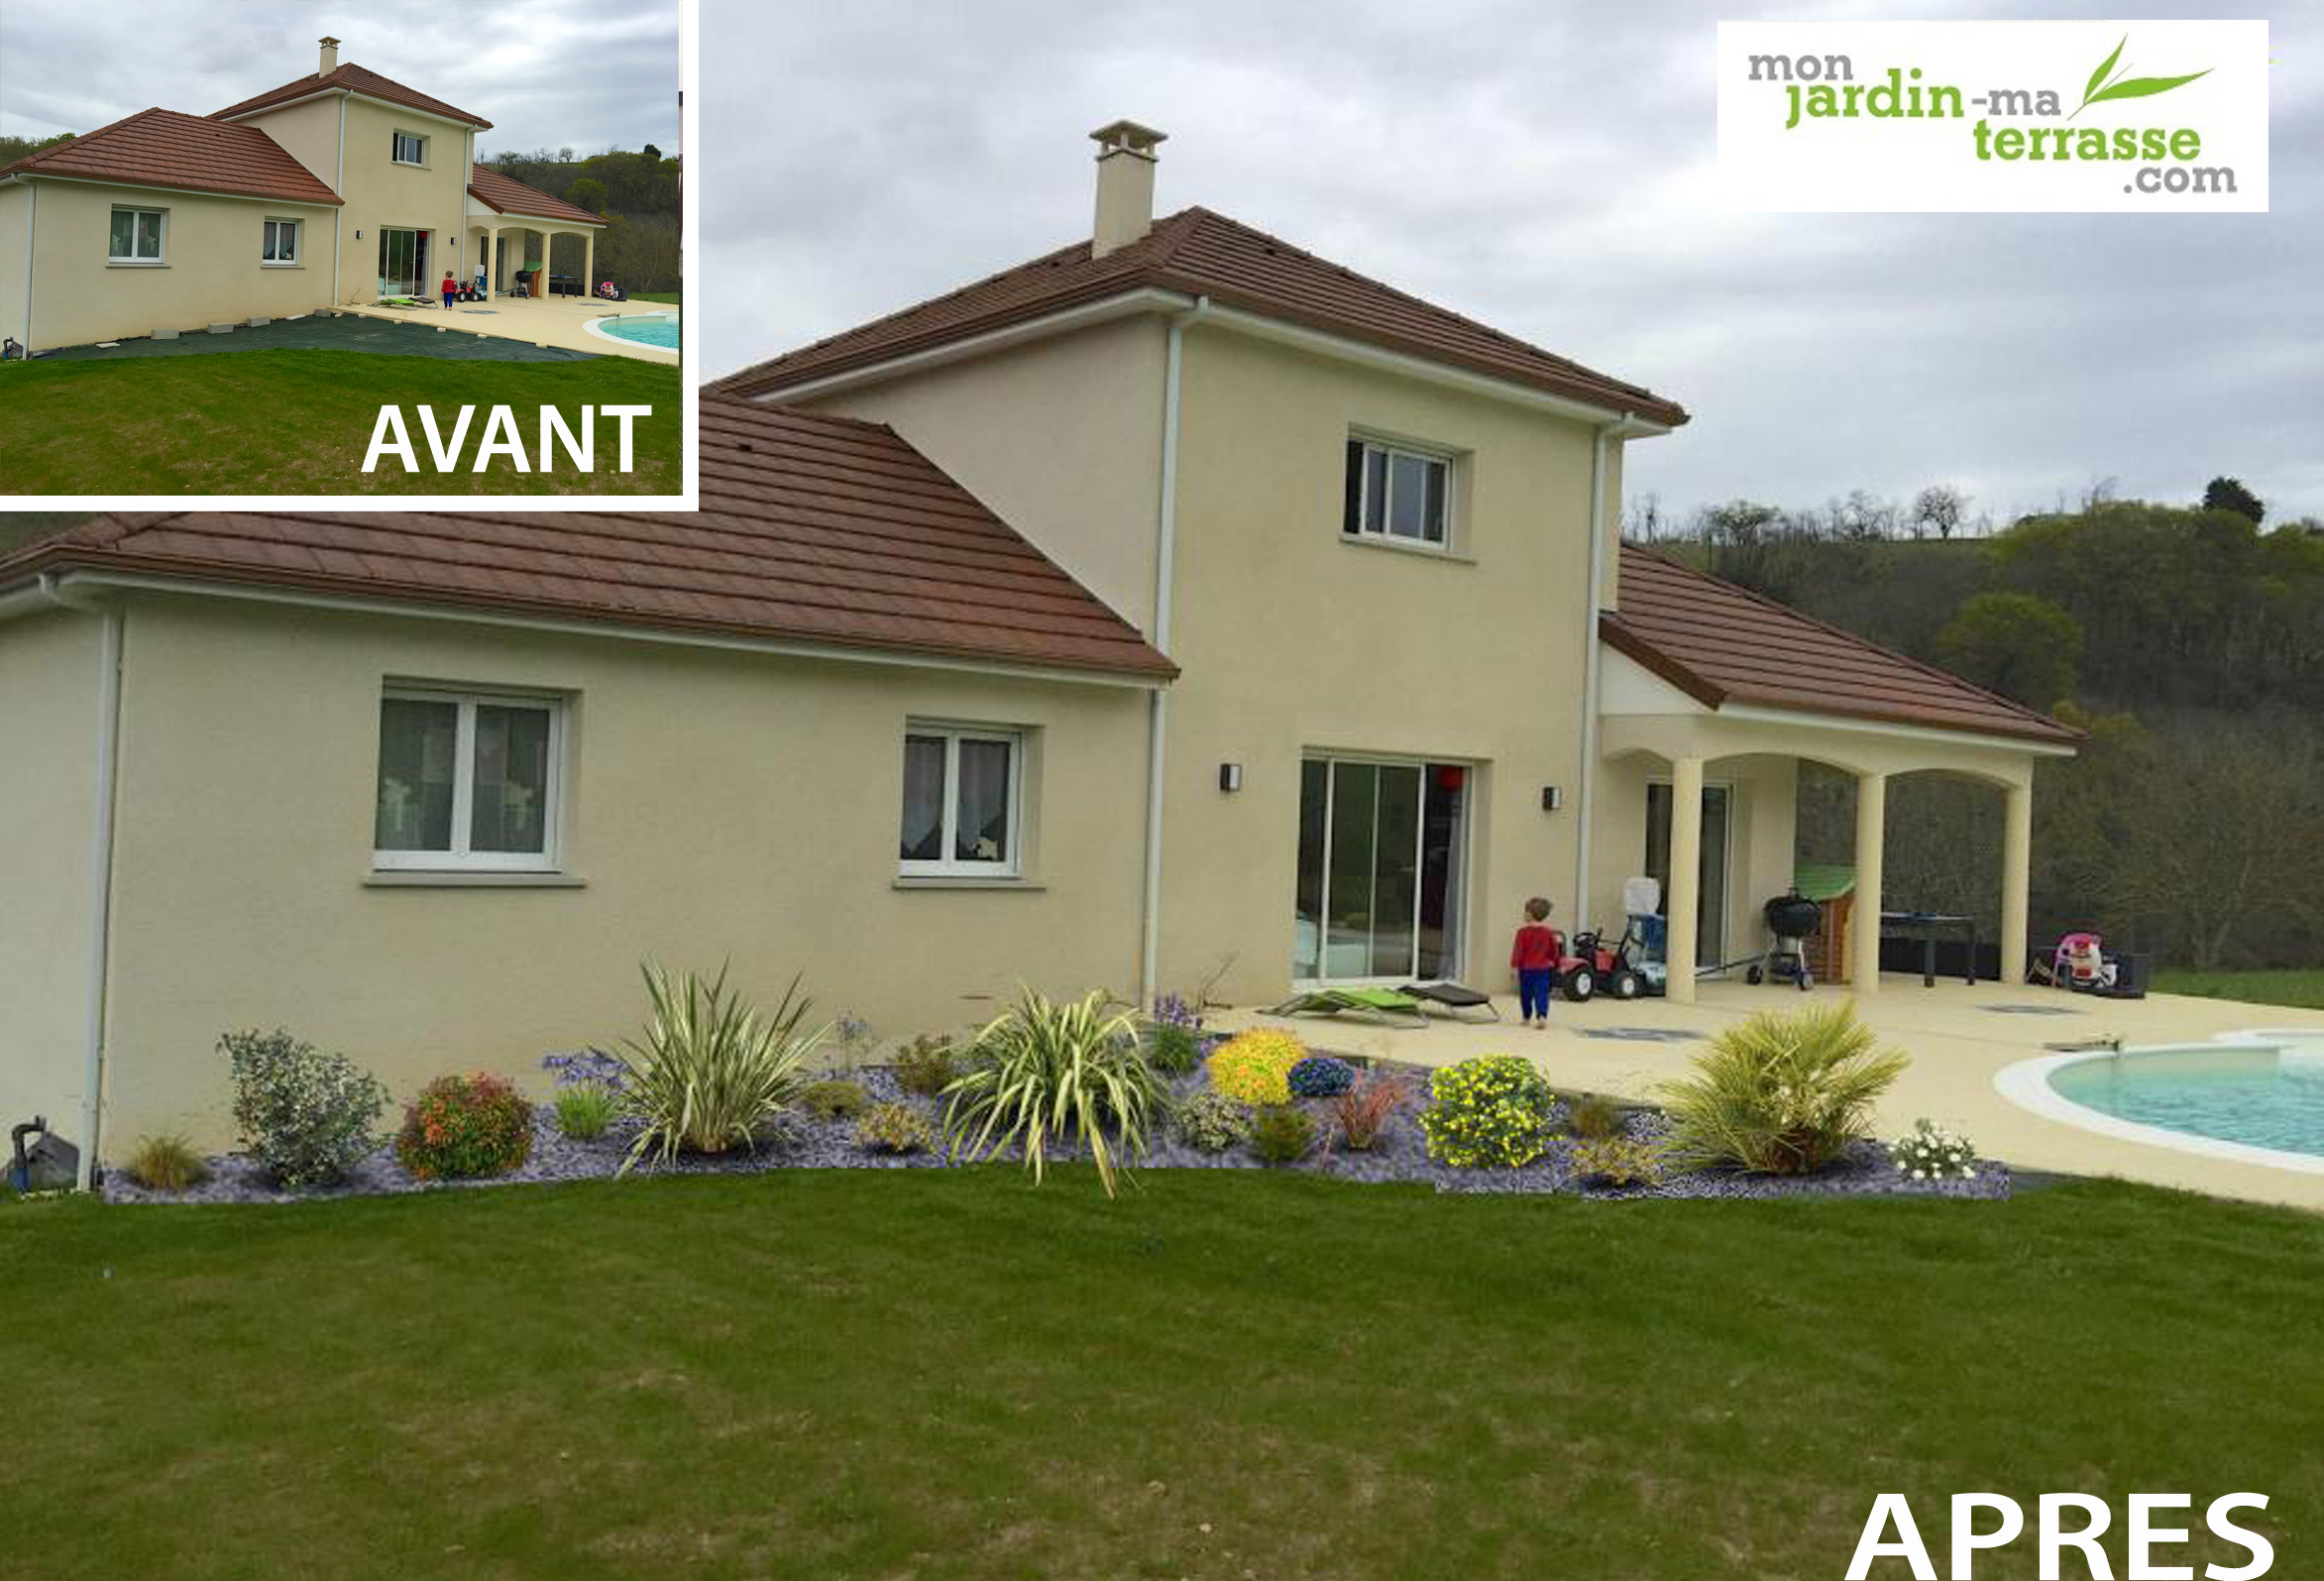 Am nagement ext rieur devant une maison monjardin for Amenagement maison exterieur